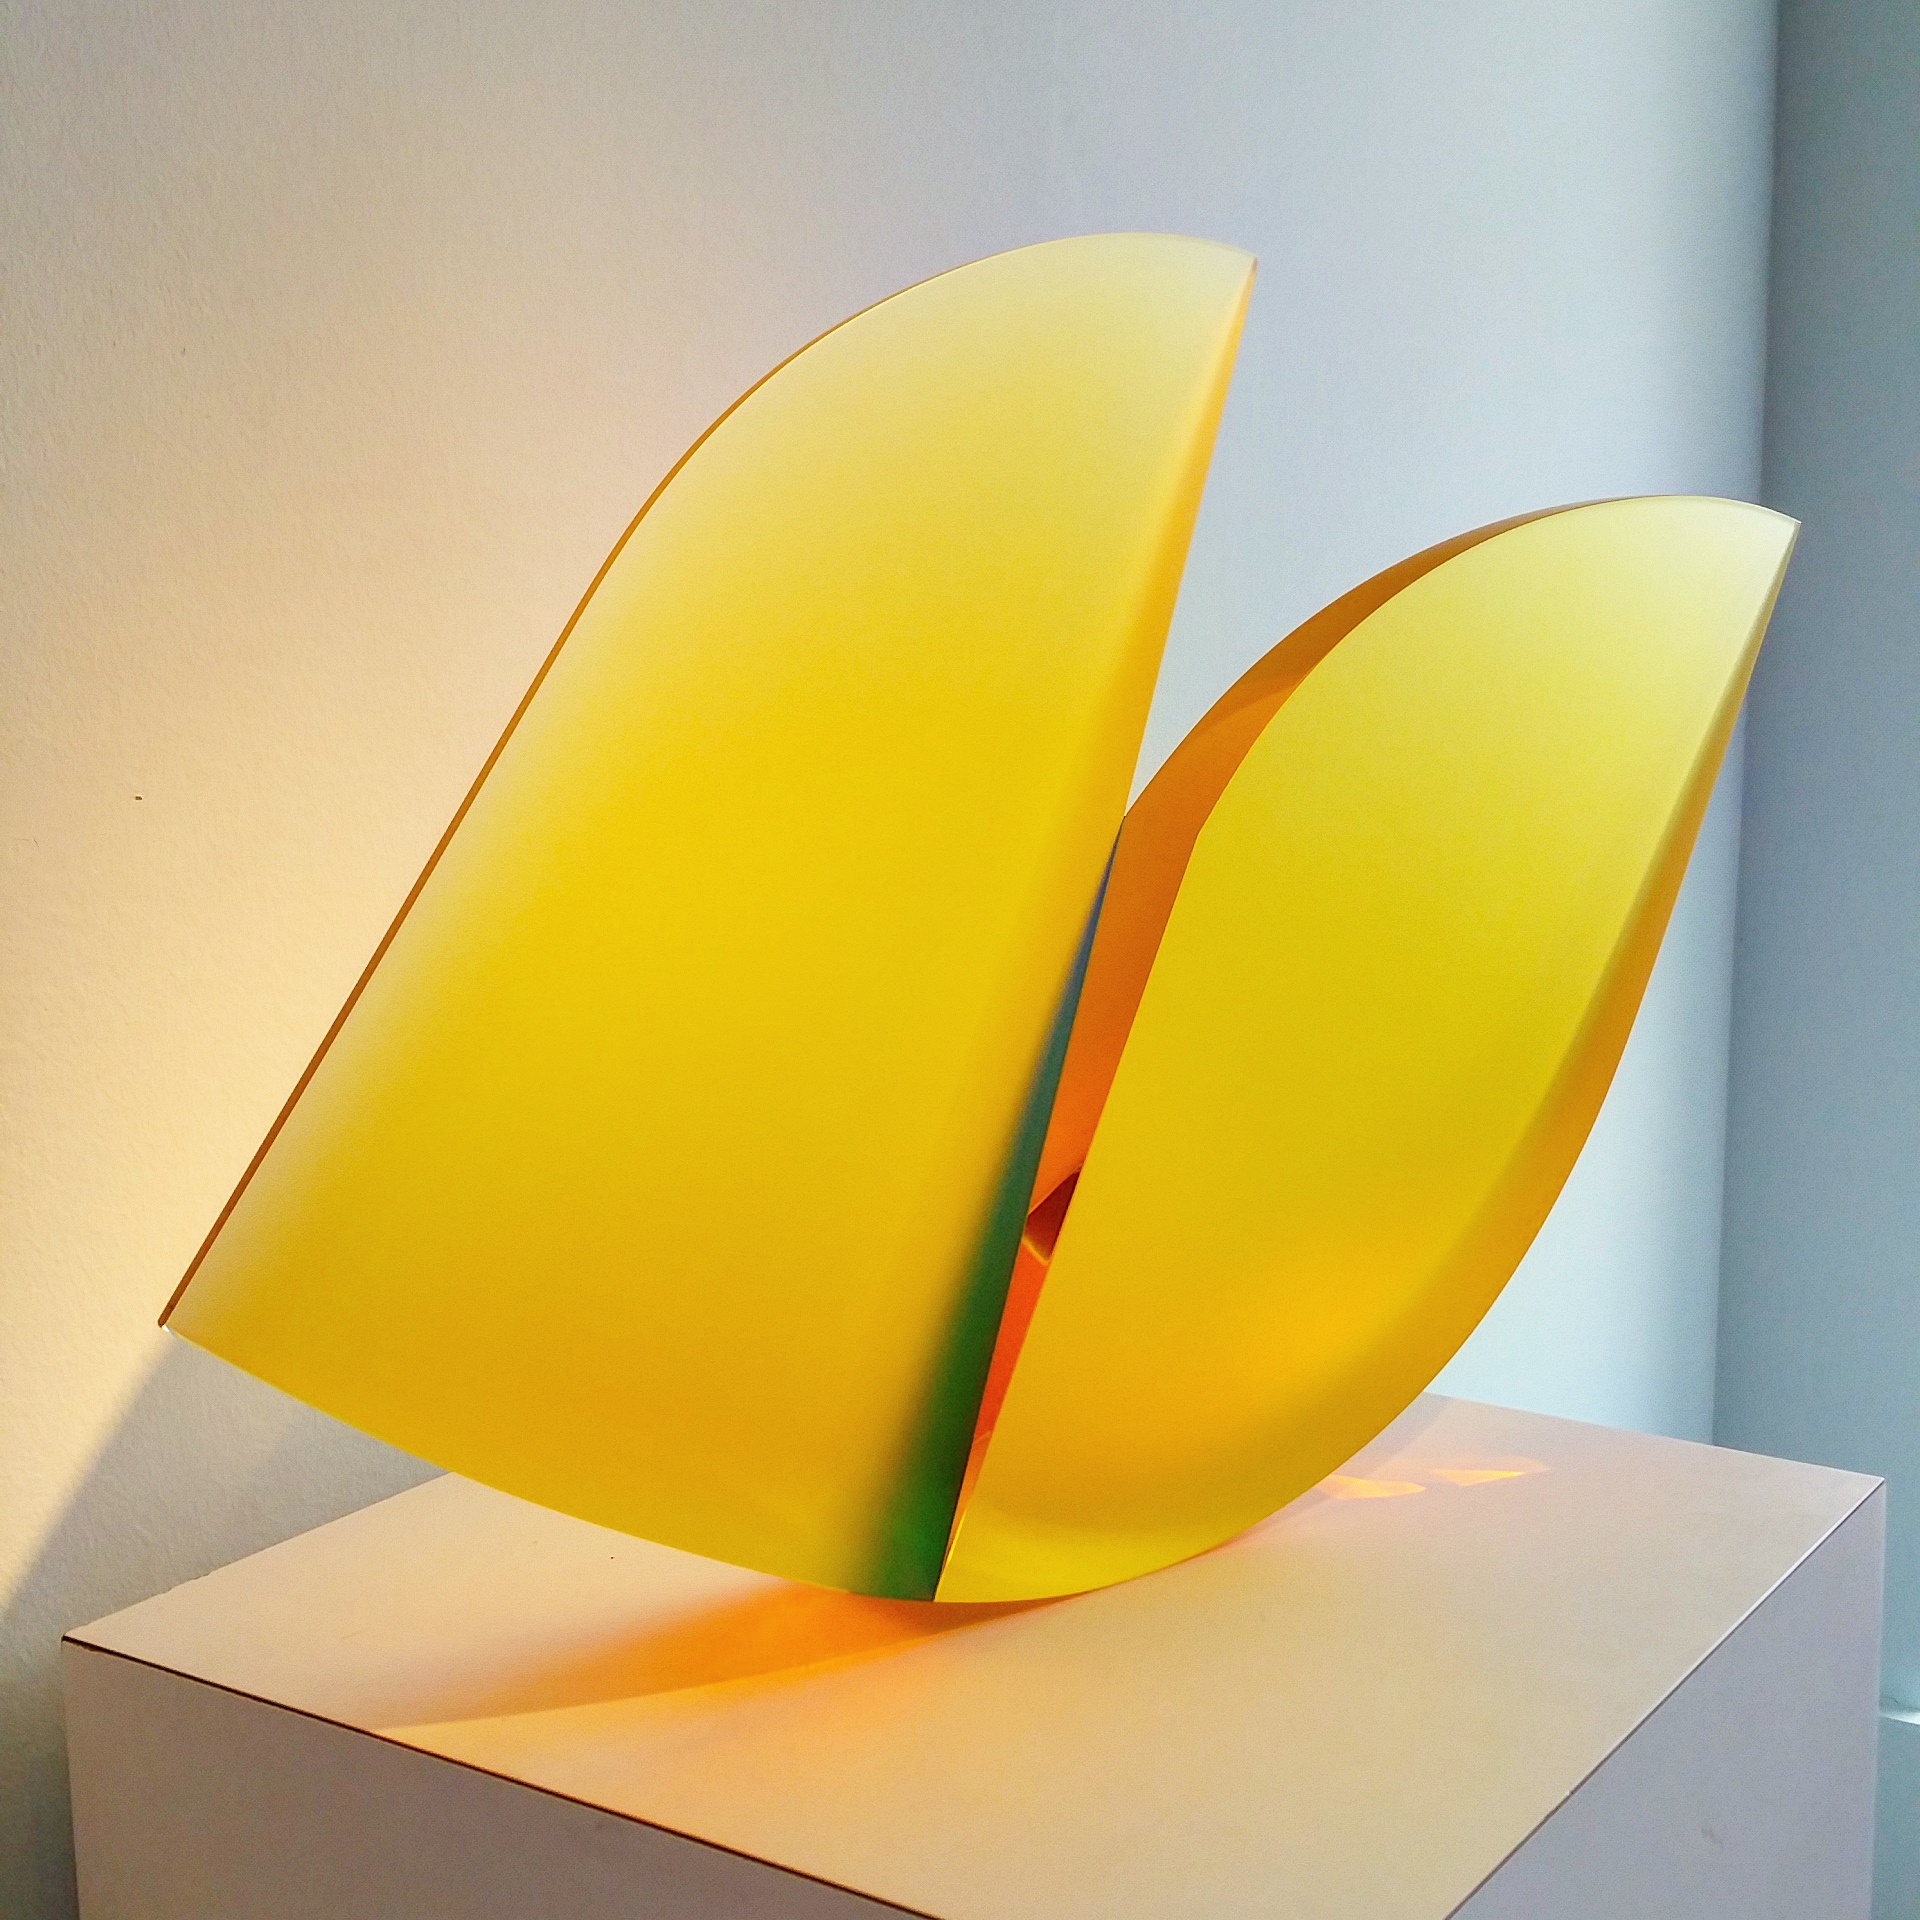 Yellow laminated glass sculpture by Martin Rosol